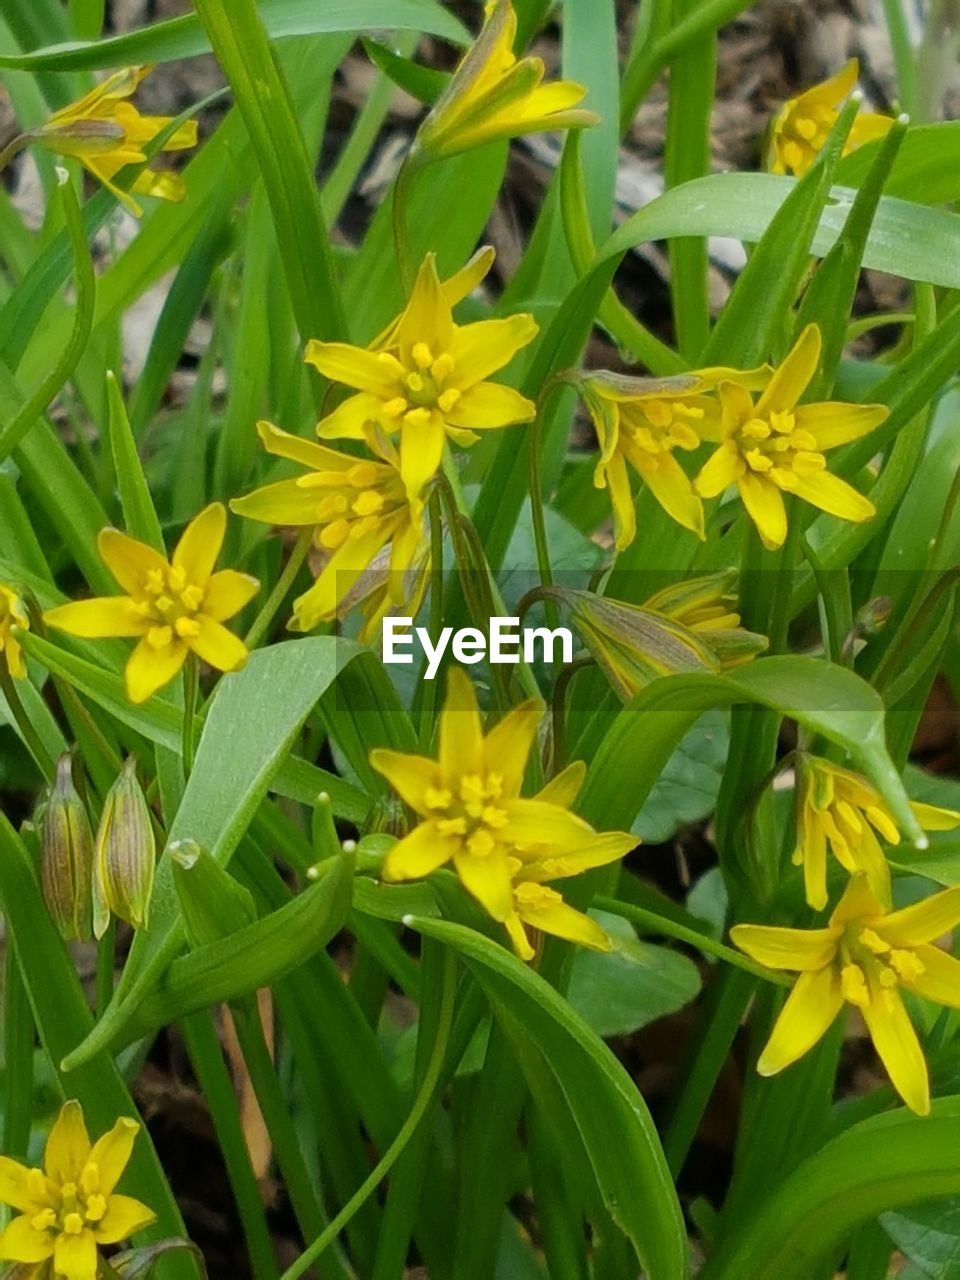 plant, flowering plant, flower, growth, yellow, beauty in nature, freshness, fragility, vulnerability, close-up, petal, green color, inflorescence, nature, flower head, day, plant part, no people, leaf, botany